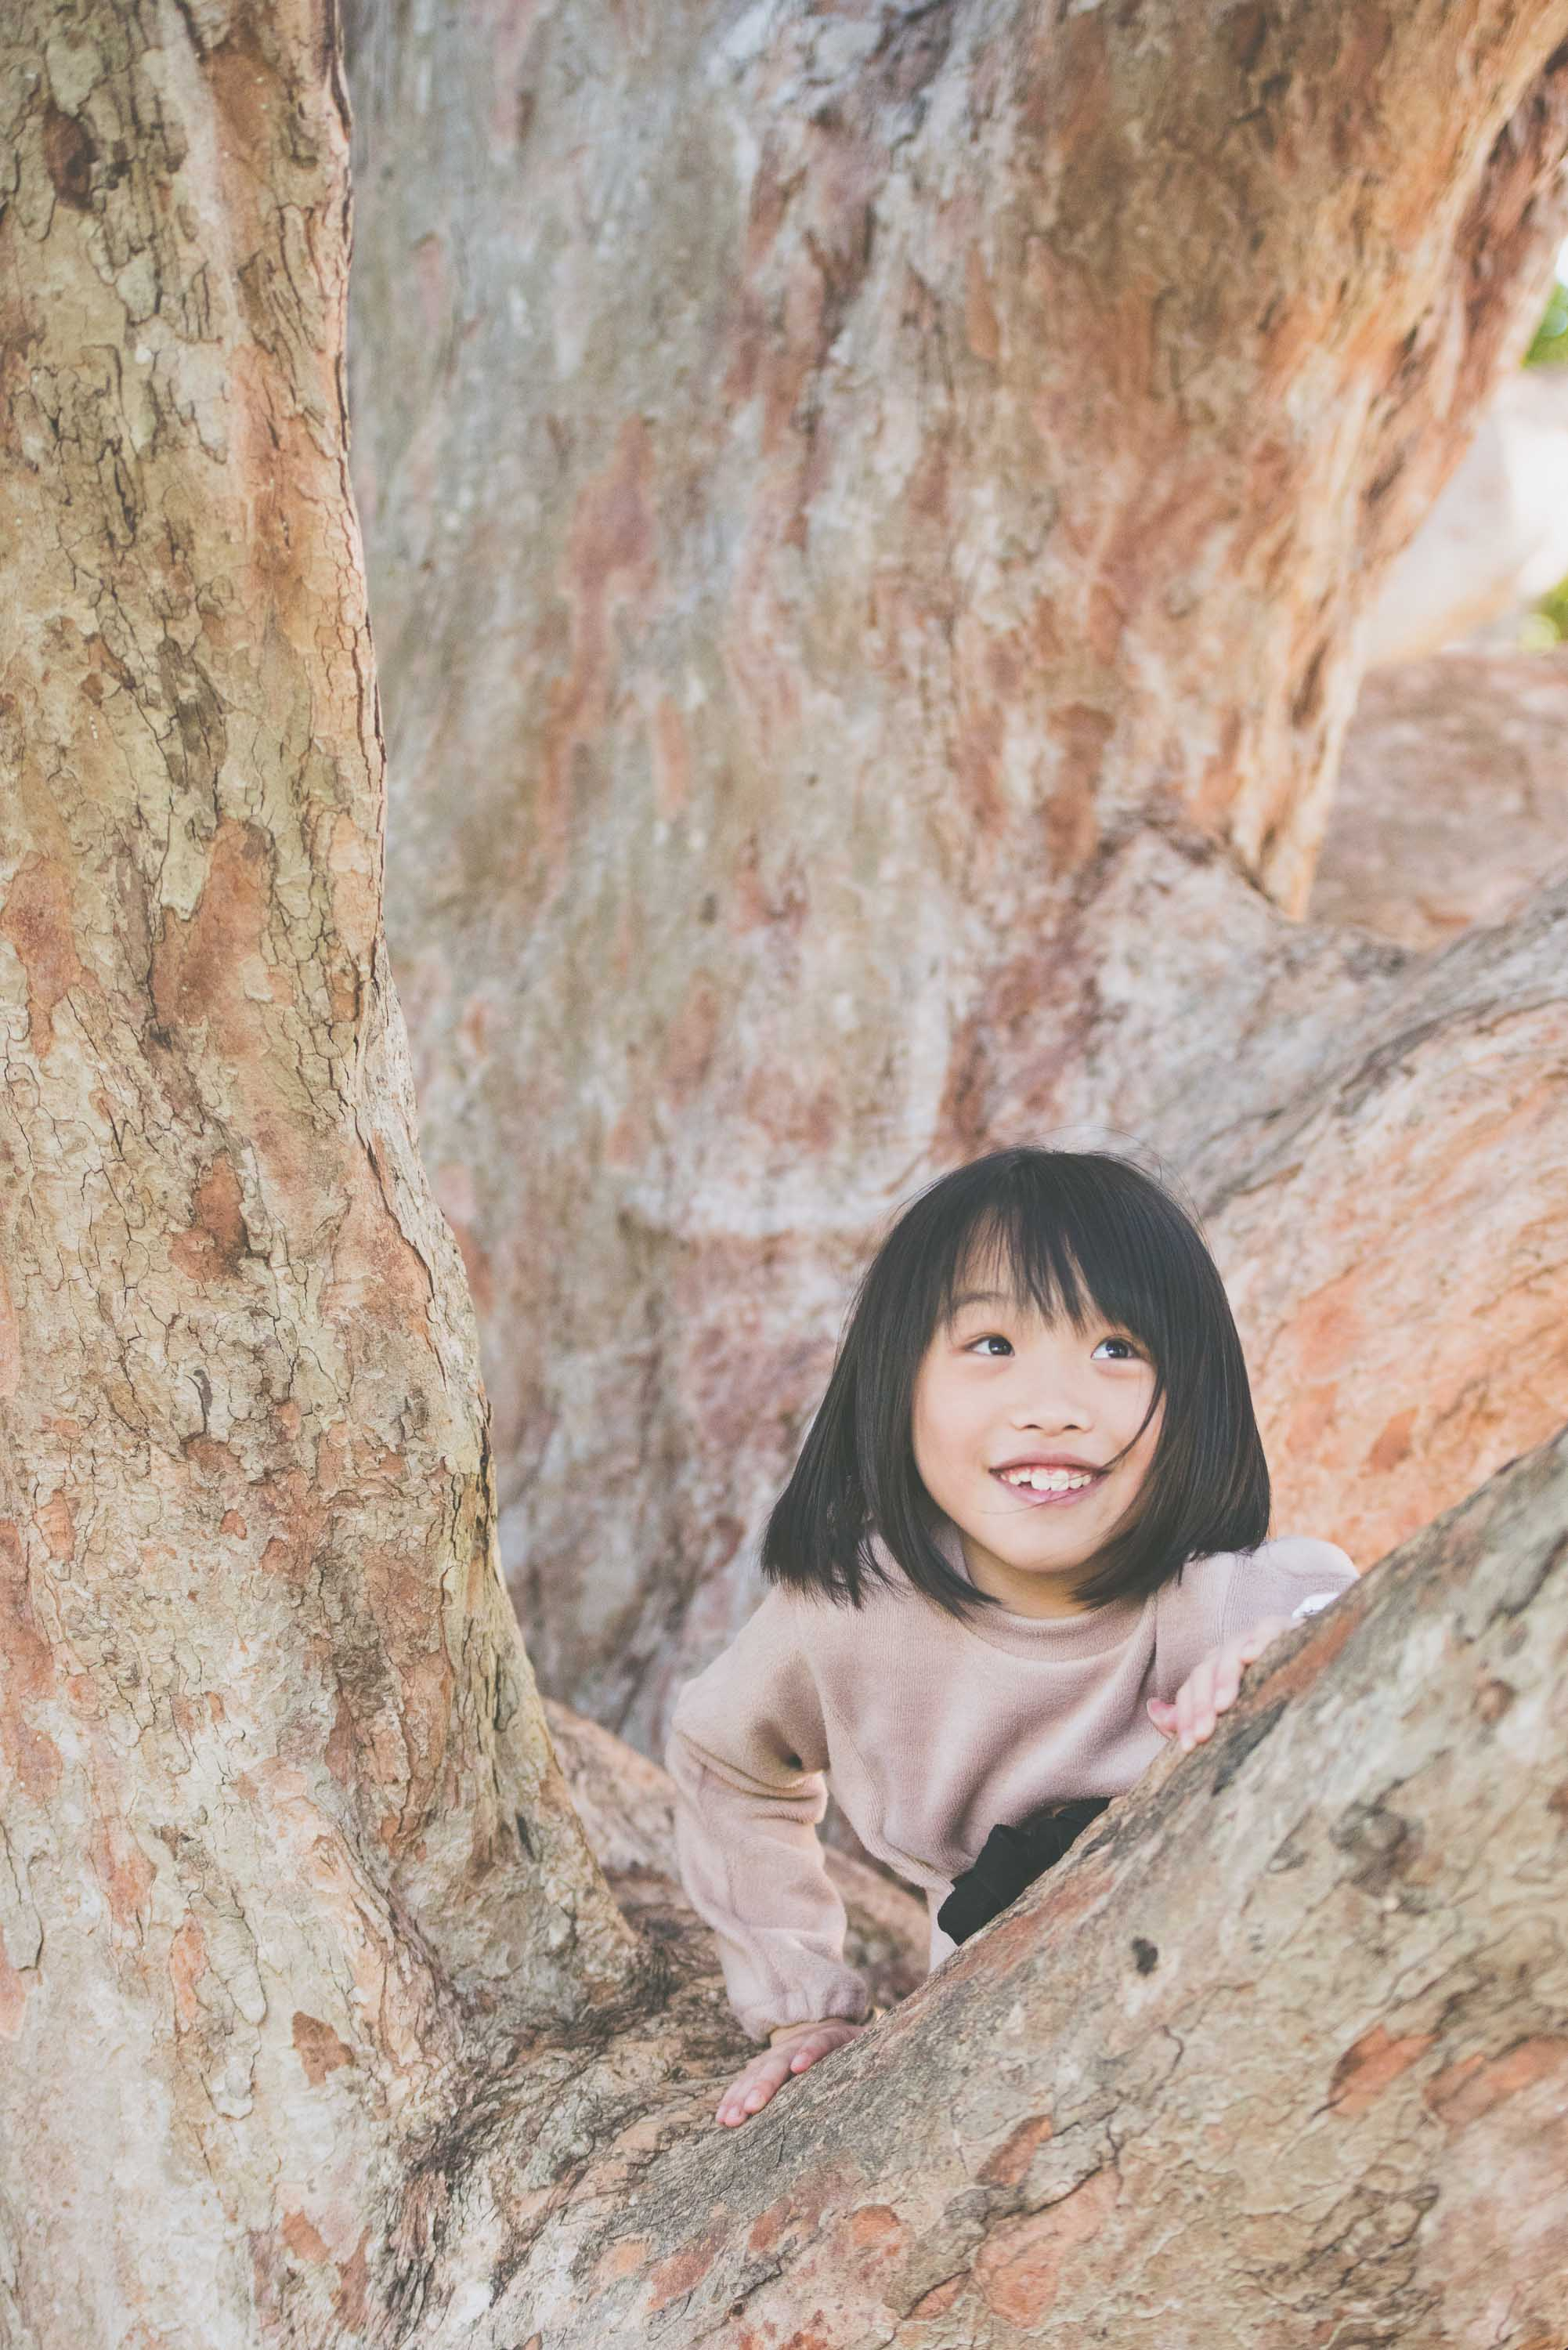 Climbing a tree - Photo credit Nicola Bailey.jpg